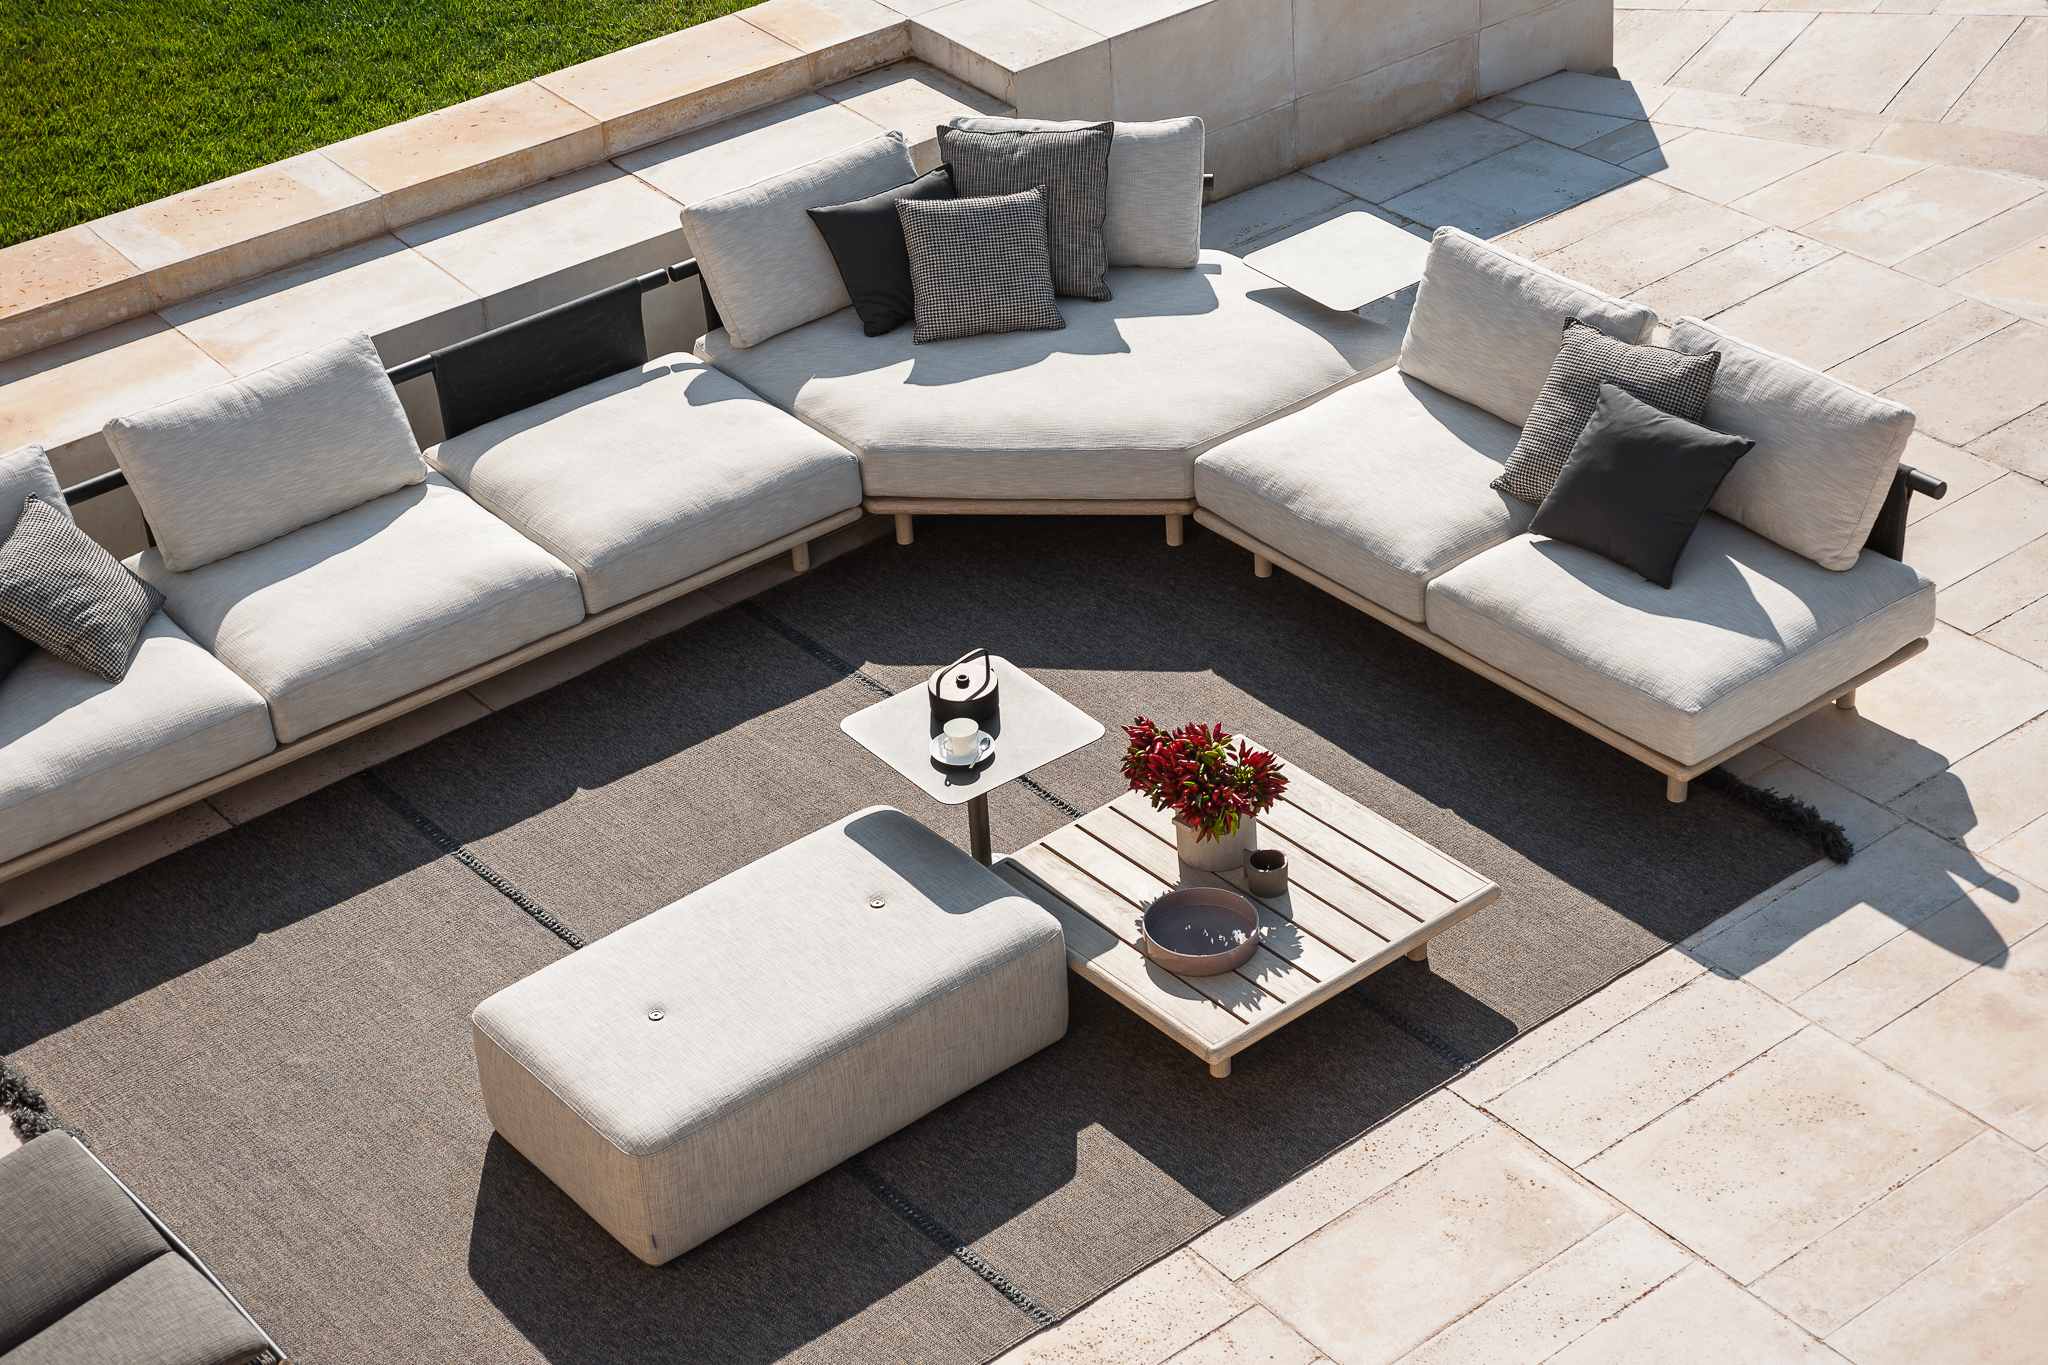 RODA - Outdoor living